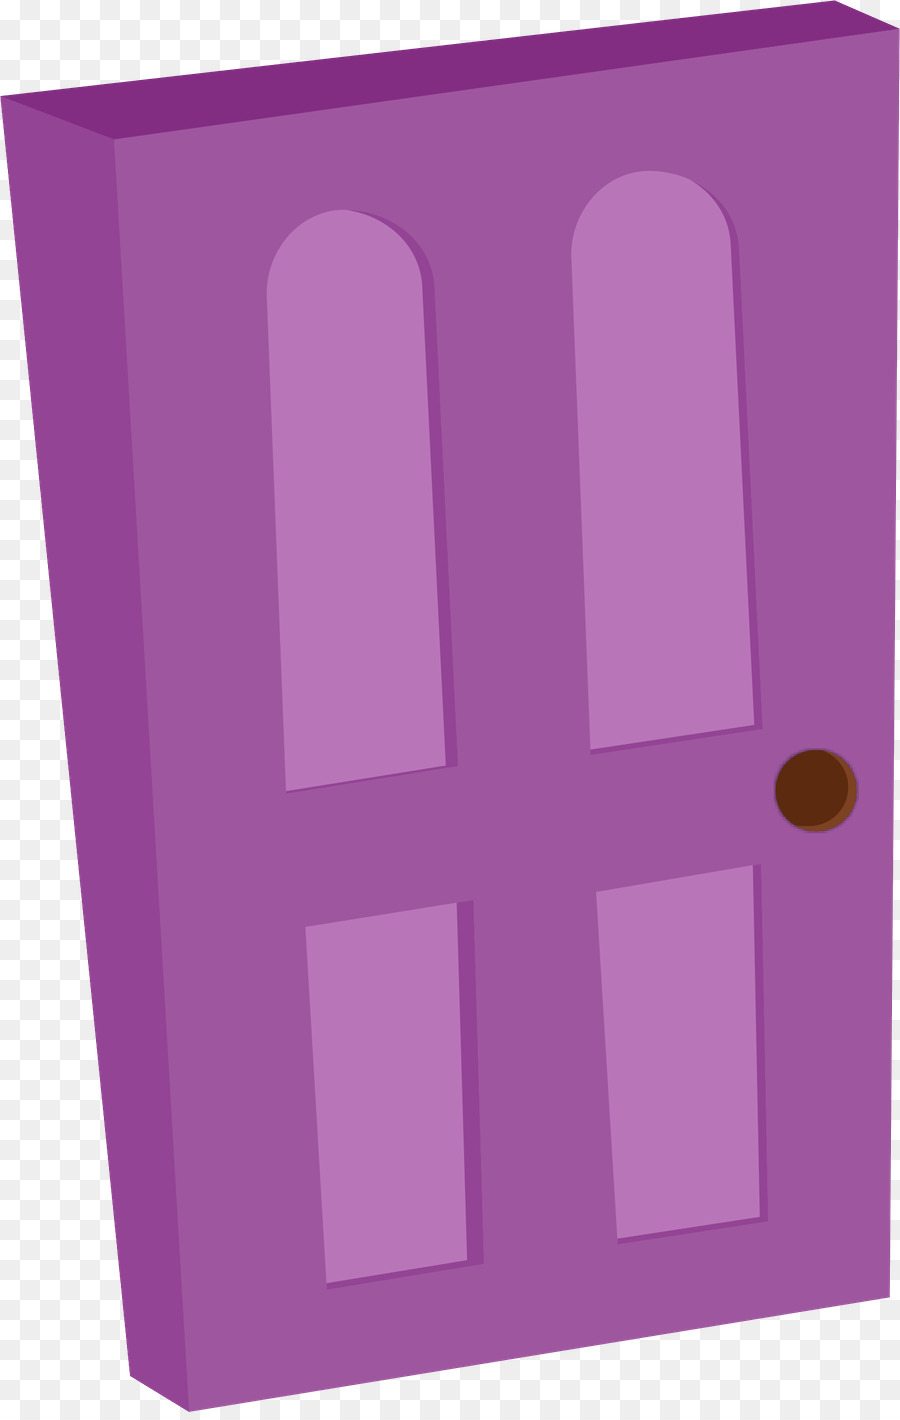 Boo YouTube Monsters Inc. Door Clip art - monster inc  sc 1 st  PNG Download : youtube door - Pezcame.Com